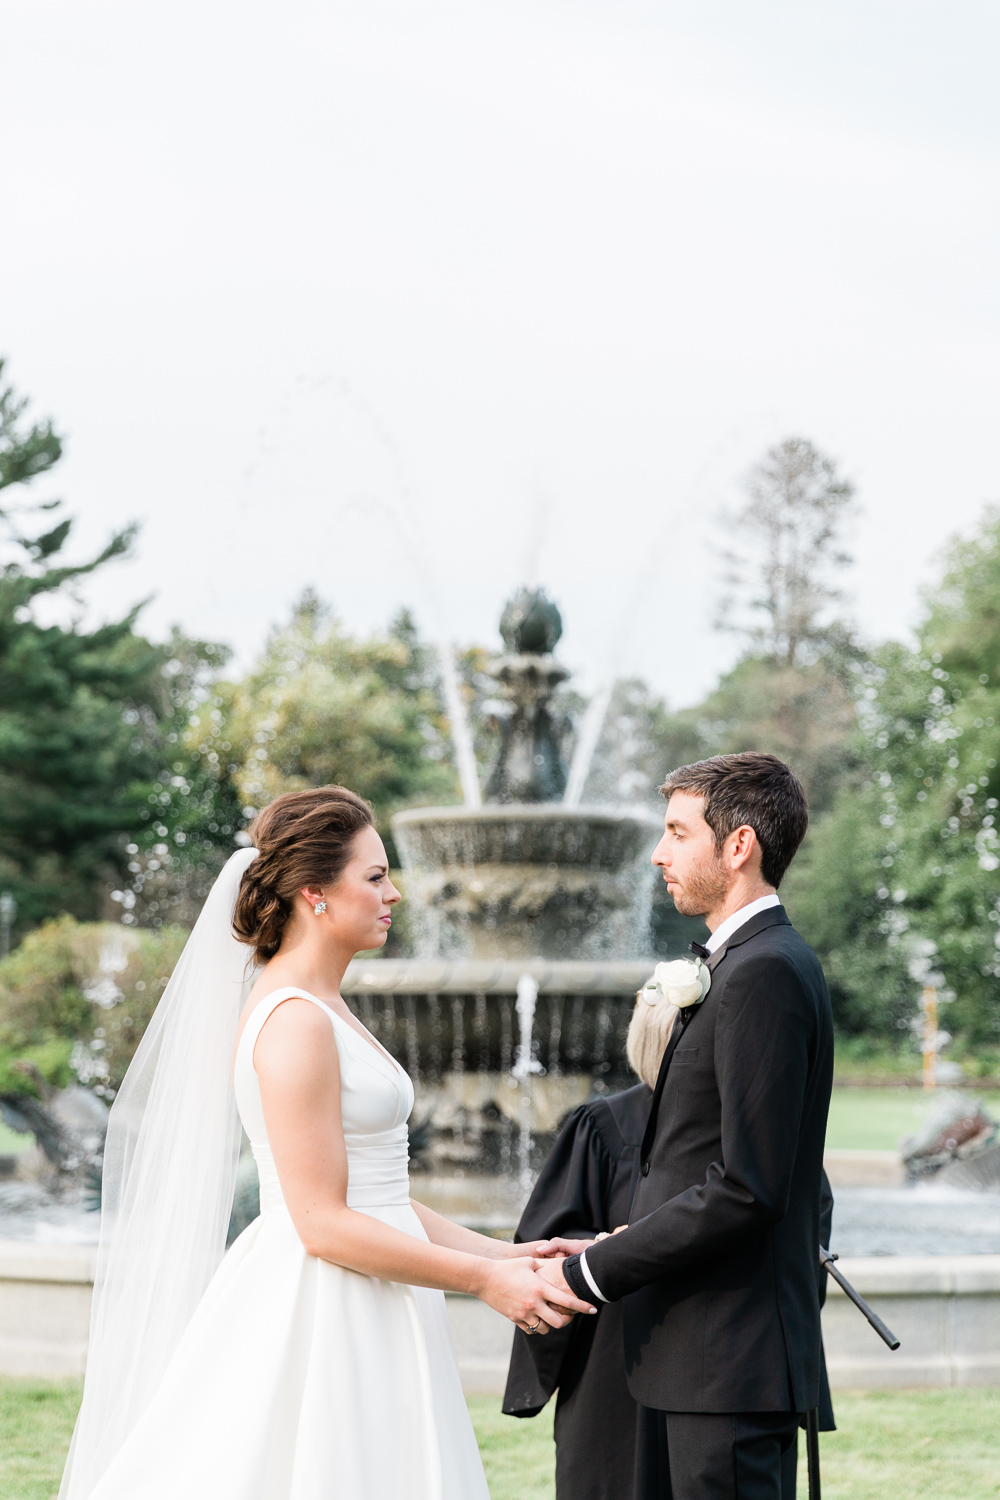 Ceremony at Tupper Manor with fountain